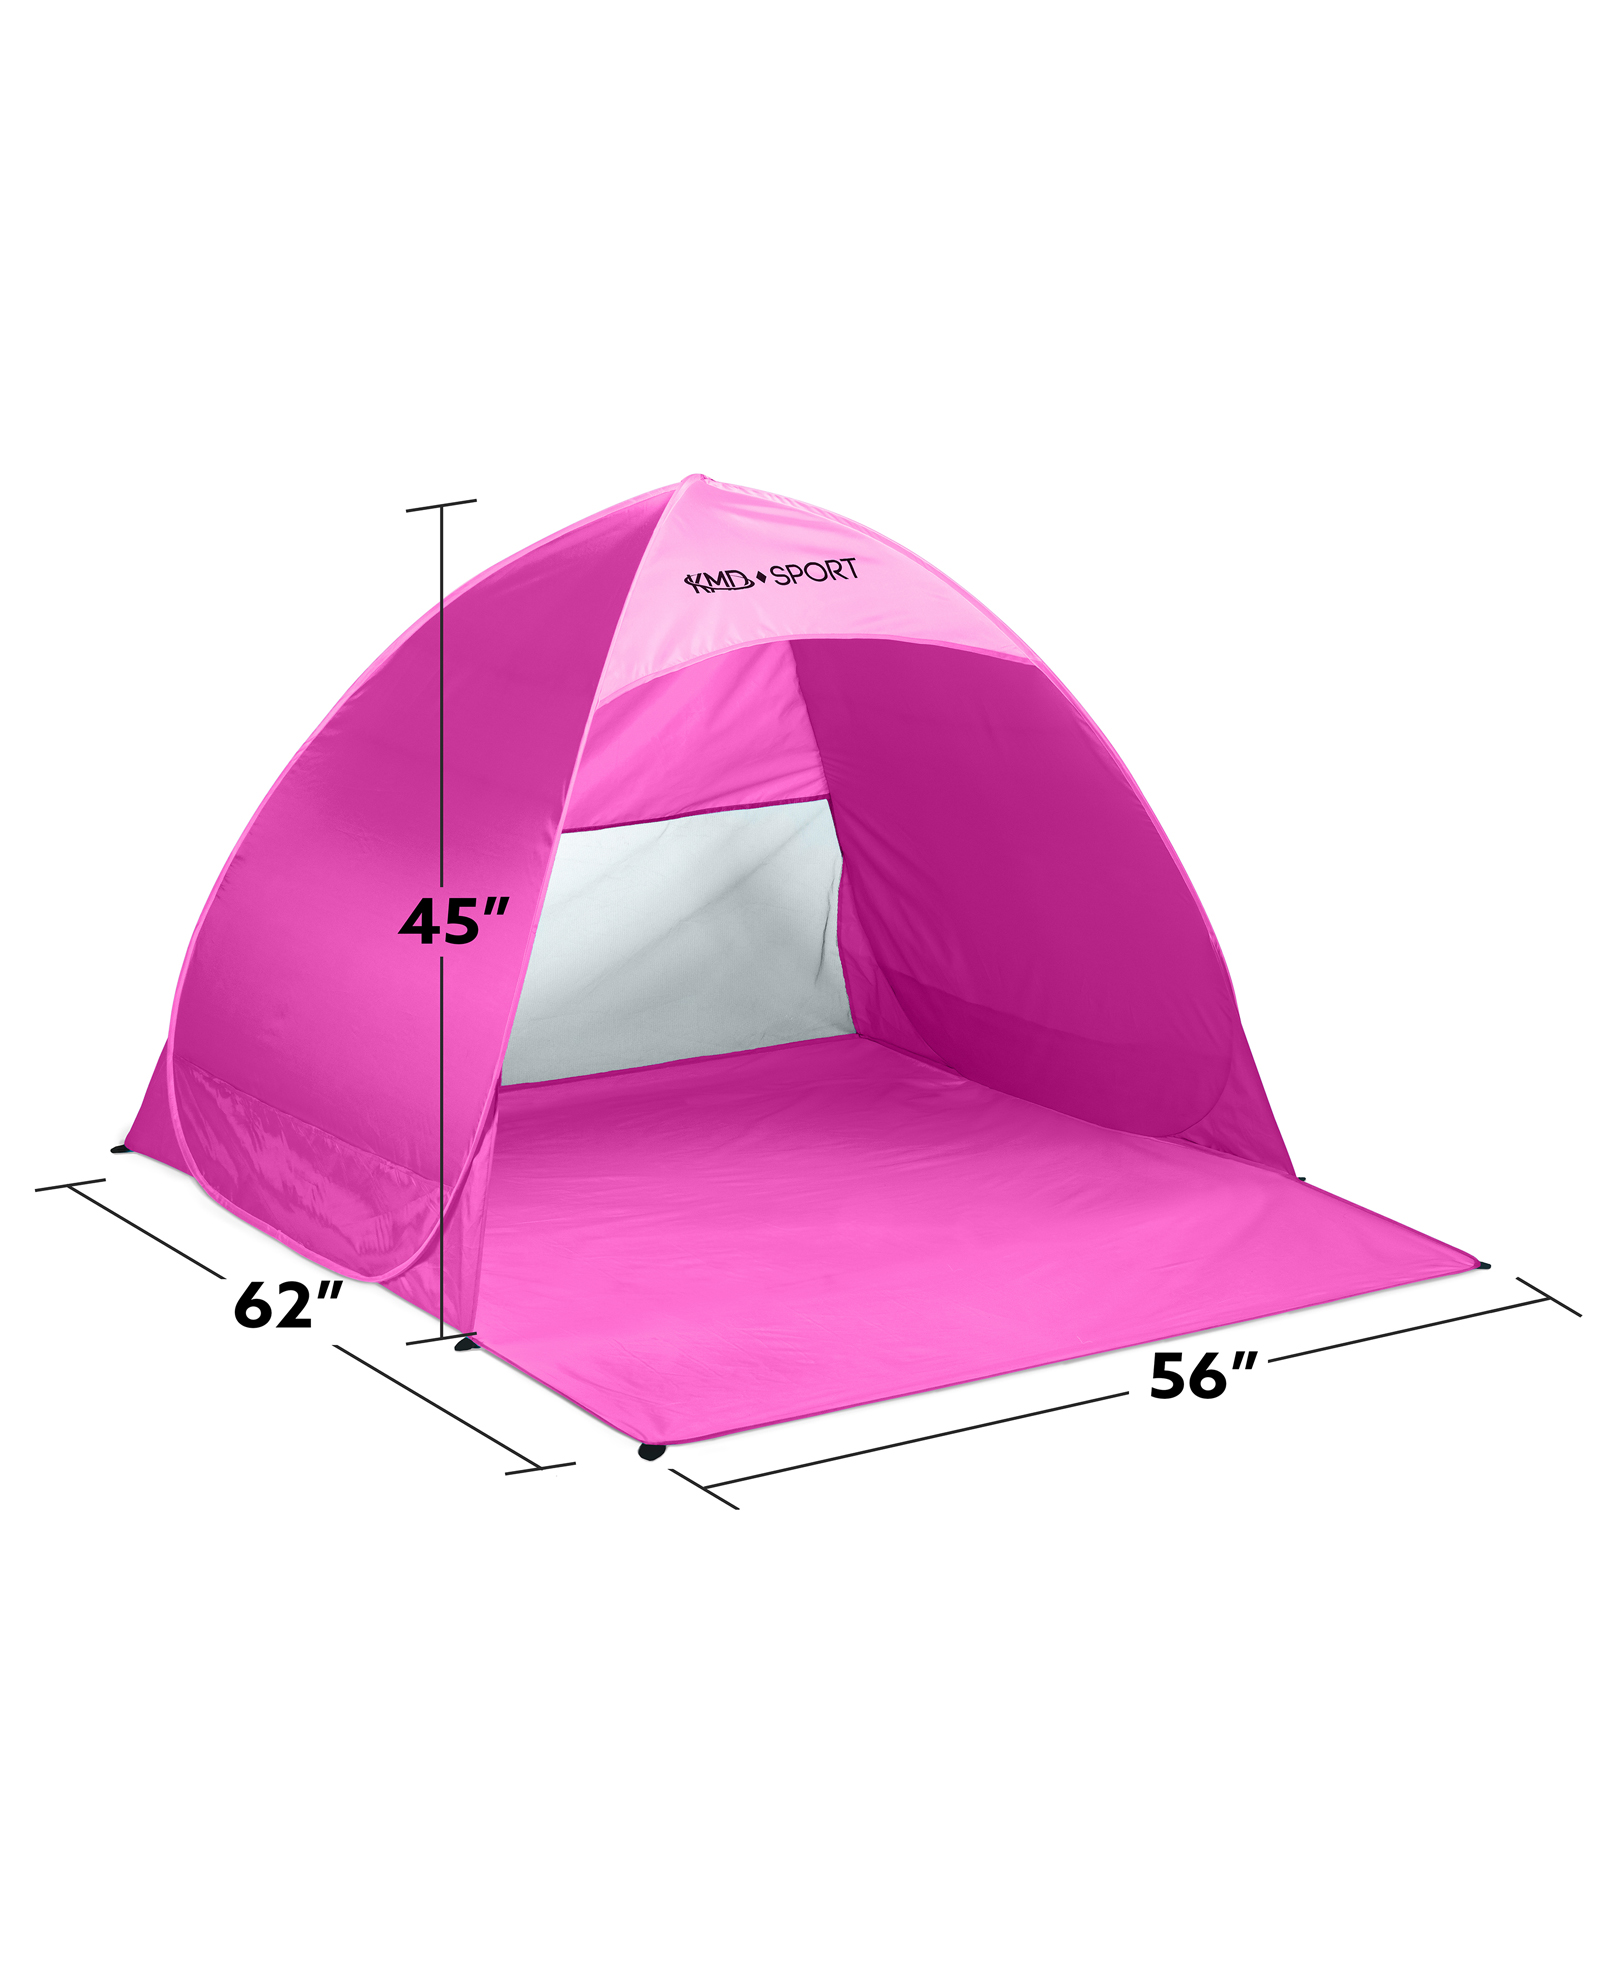 Beach Pop Up Tent u2013 Lightweight Portable Cabana for Privacy u0026 Shade u2013 Great for Kids Adults Family u2013 Quick Set Up Provides Shelter from the Sun ...  sc 1 st  KMD Direct : pop ip tent - memphite.com